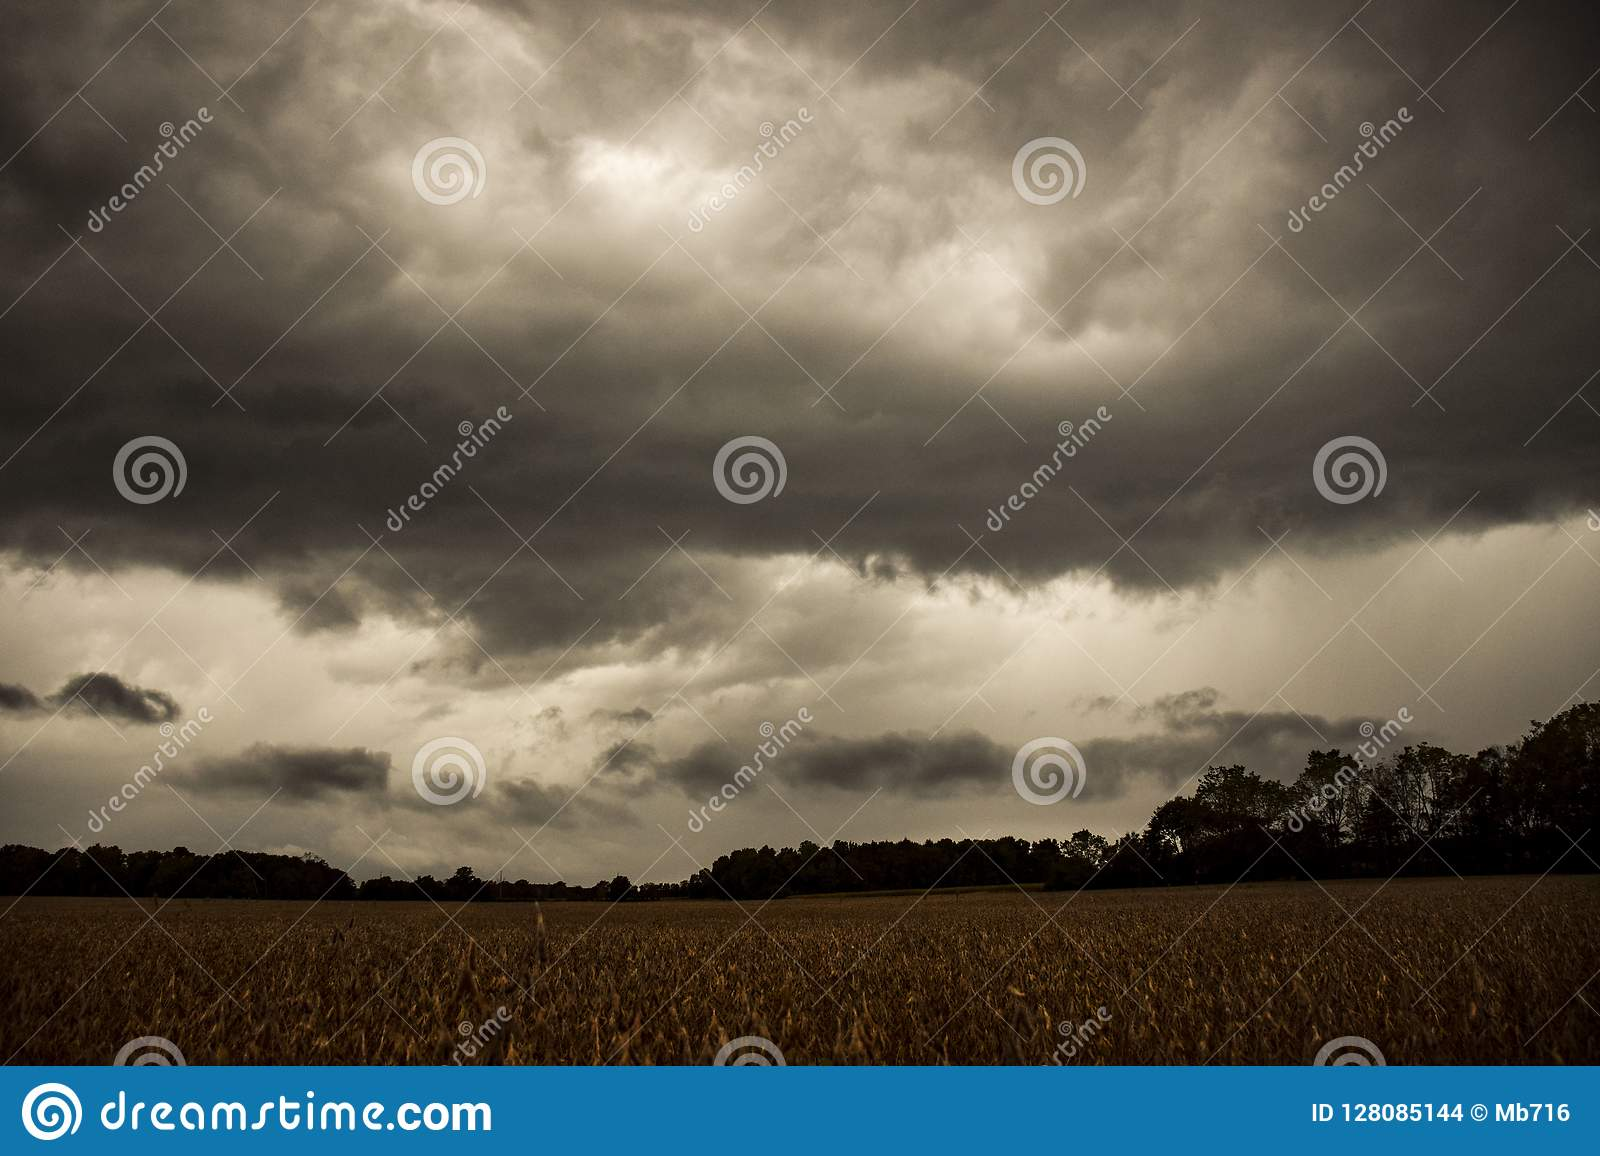 OMINOUS STORM CLOUDS ON HORIZON